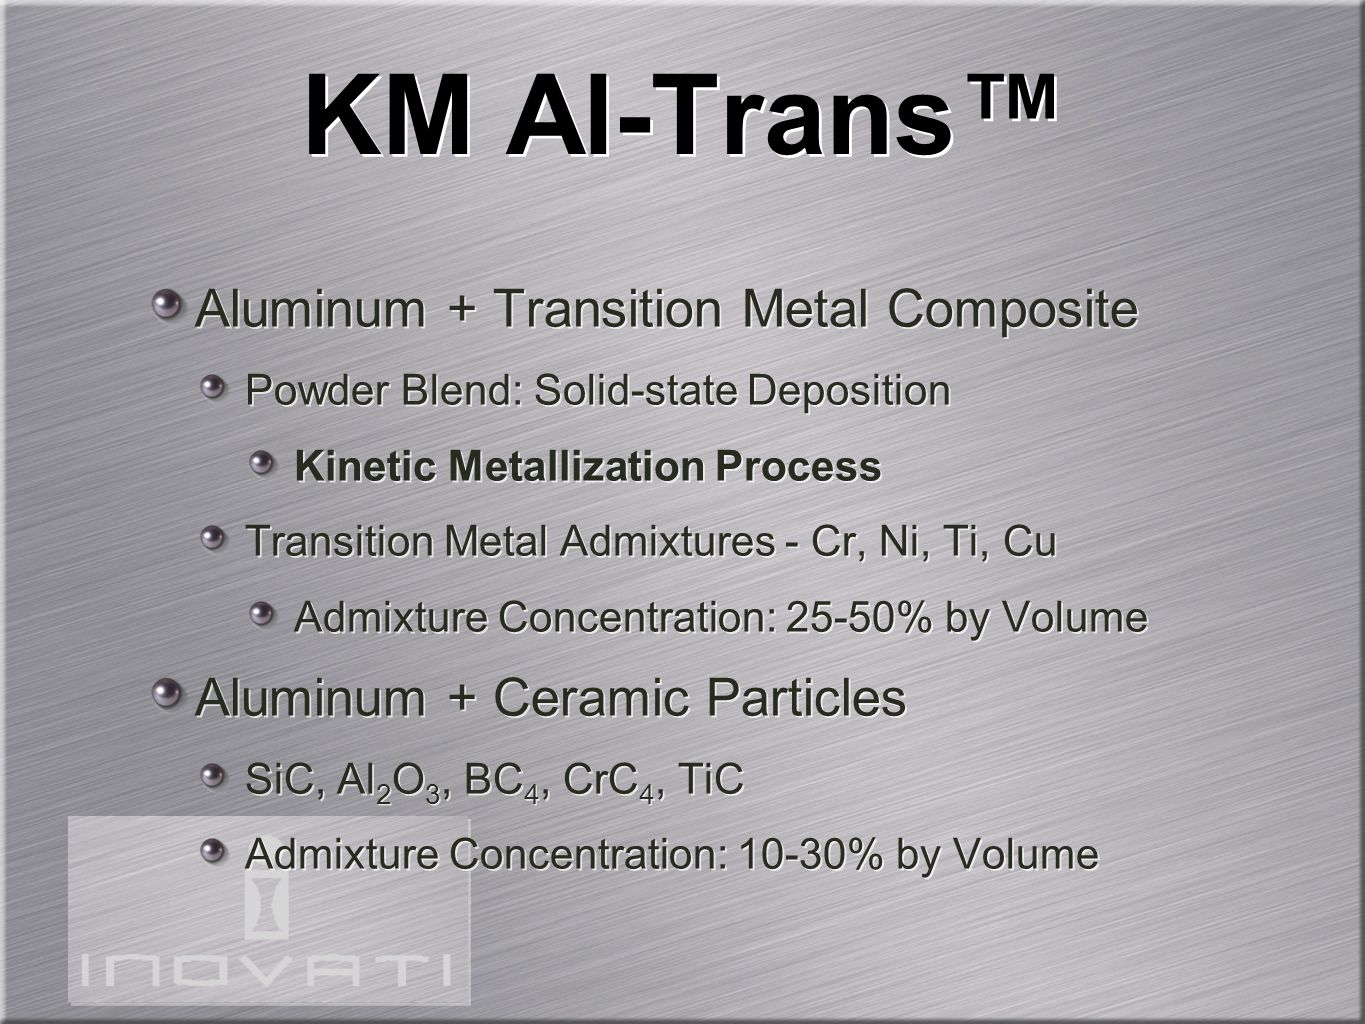 KM Al-Trans™ Aluminum + Transition Metal Composite Powder Blend: Solid-state Deposition Kinetic Metallization Process Transition Metal Admixtures - Cr, Ni, Ti, Cu Admixture Concentration: 25-50% by Volume Aluminum + Ceramic Particles SiC, Al 2 O 3, BC 4, CrC 4, TiC Admixture Concentration: 10-30% by Volume Aluminum + Transition Metal Composite Powder Blend: Solid-state Deposition Kinetic Metallization Process Transition Metal Admixtures - Cr, Ni, Ti, Cu Admixture Concentration: 25-50% by Volume Aluminum + Ceramic Particles SiC, Al 2 O 3, BC 4, CrC 4, TiC Admixture Concentration: 10-30% by Volume